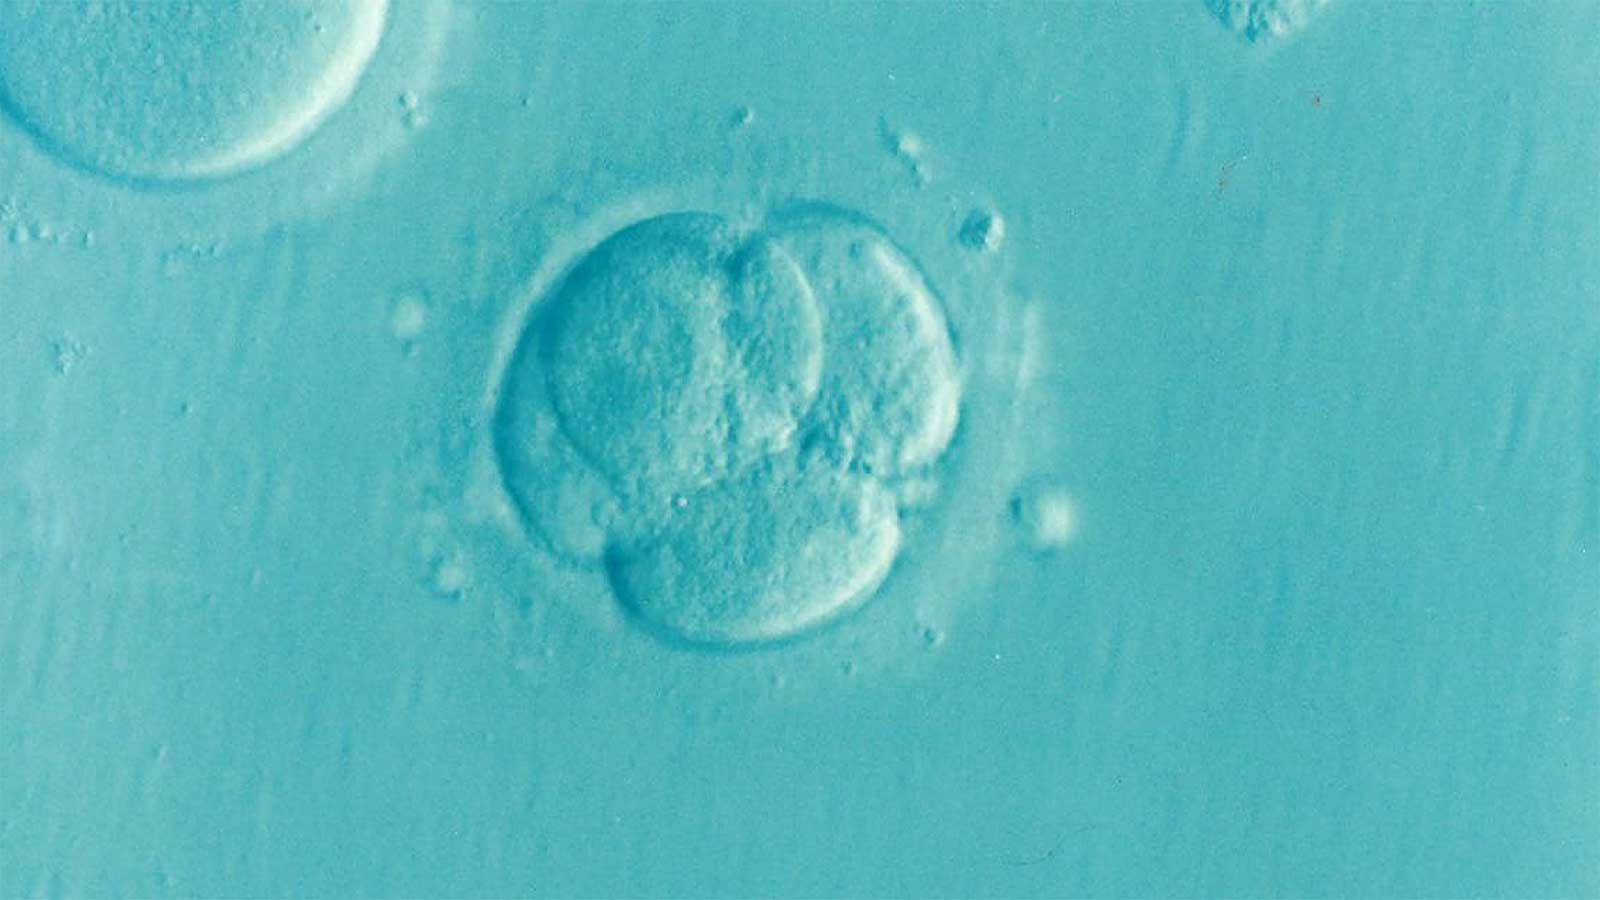 Genetically Modified Humans and Embryos, a Soon to Be Reality